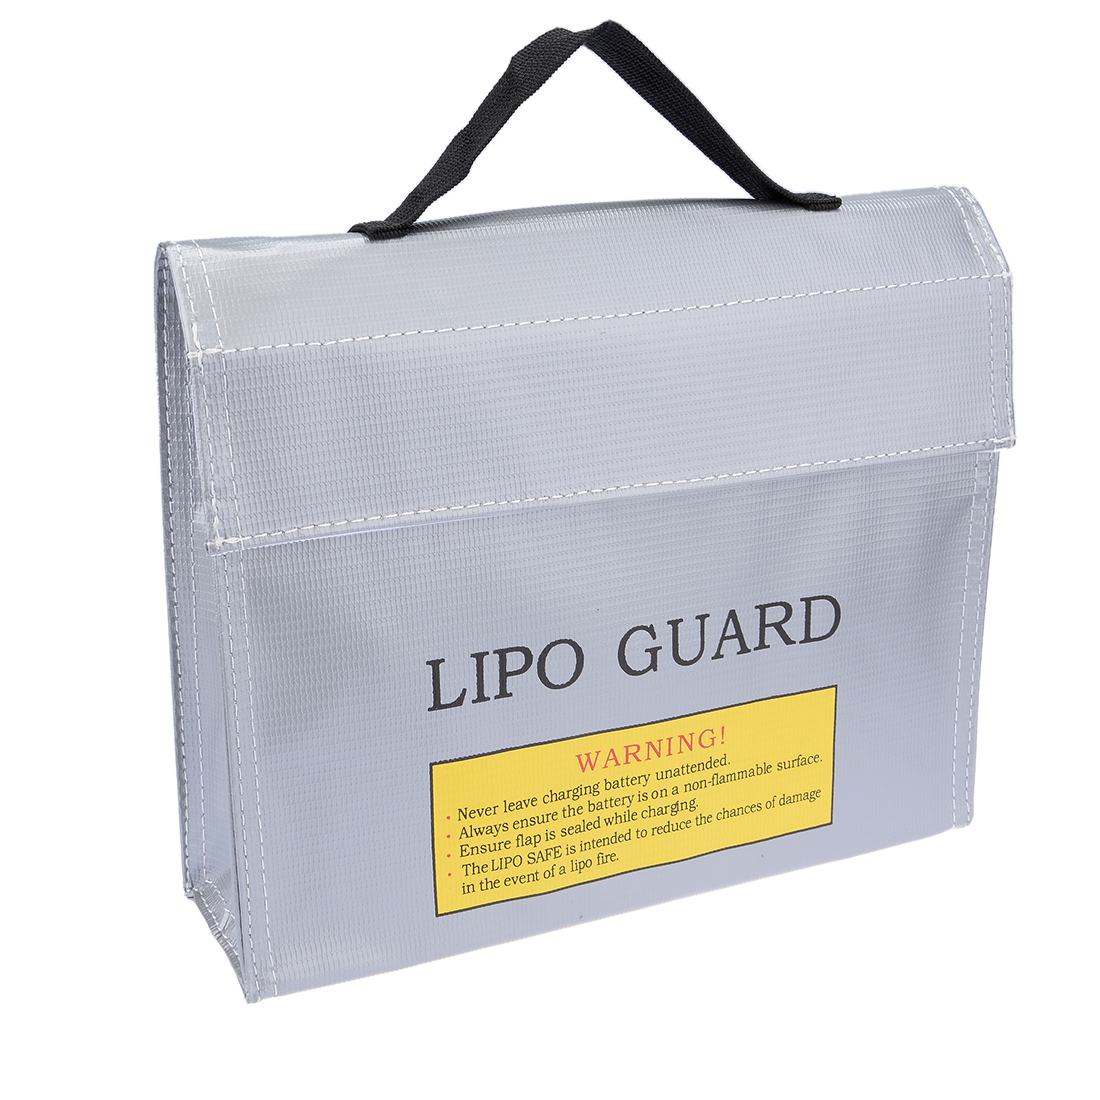 Lipo Battery Fireproof Explosionproof Bag Storage Guard Safe Charging Holder 215mm x 45mm x 165mm